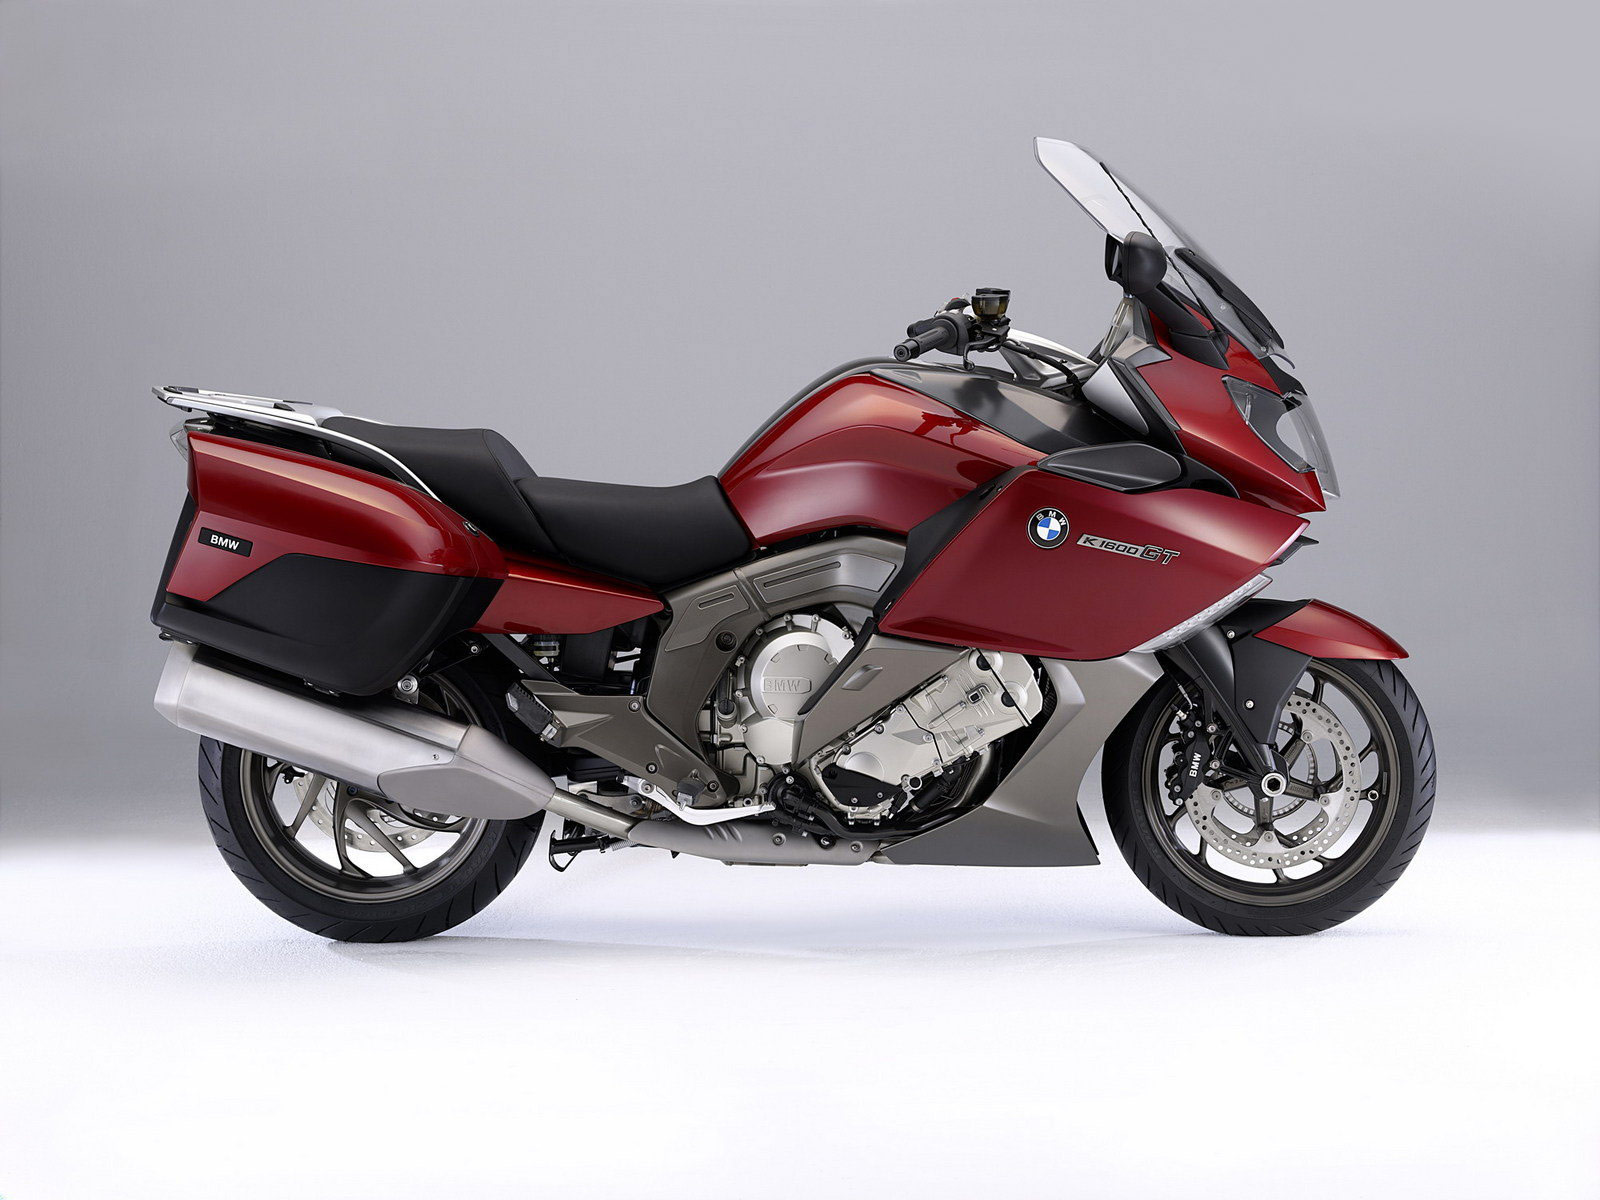 2012 bmw k 1600 gt wallpapers motorcycle accident lawyers. Black Bedroom Furniture Sets. Home Design Ideas